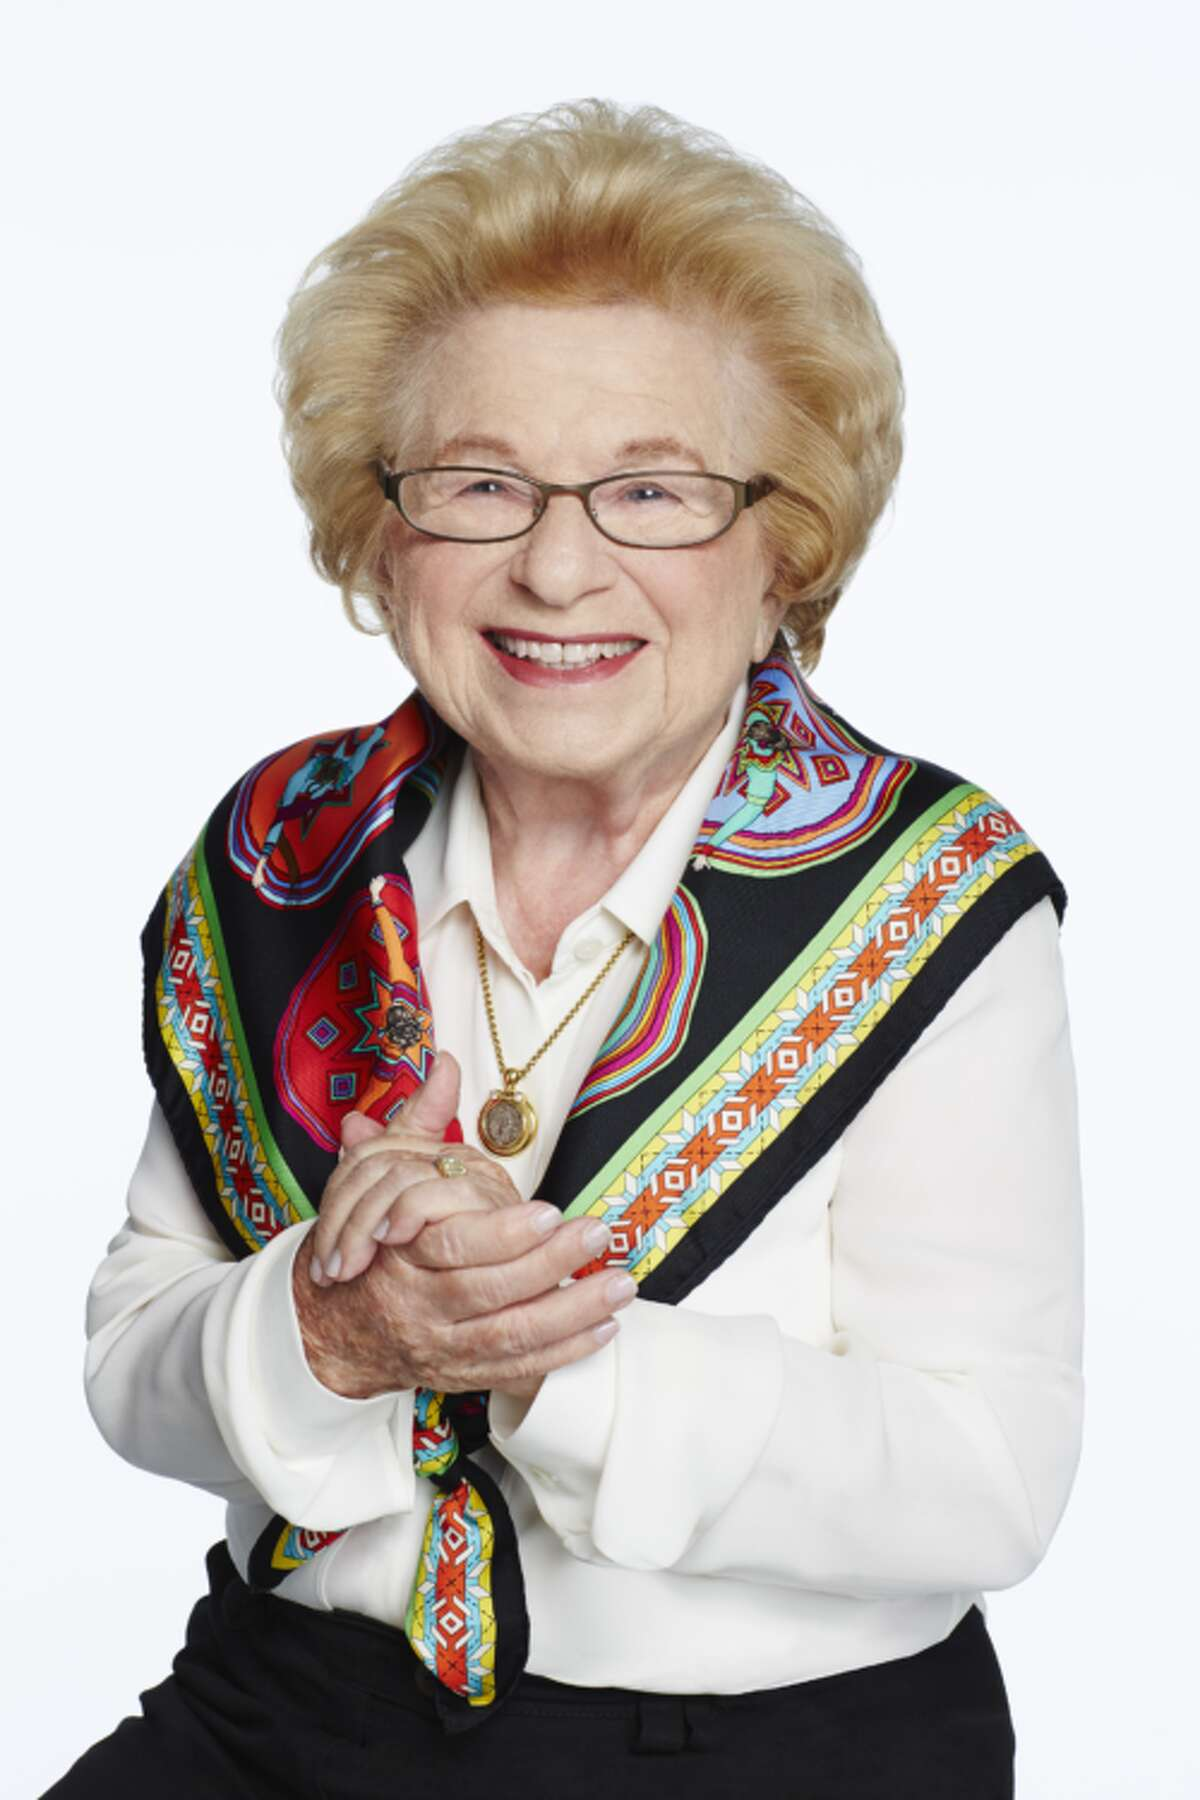 Dr. Ruth Westheimer is a Holocaust survivor who will discuss how to confront the world's growing hatred.